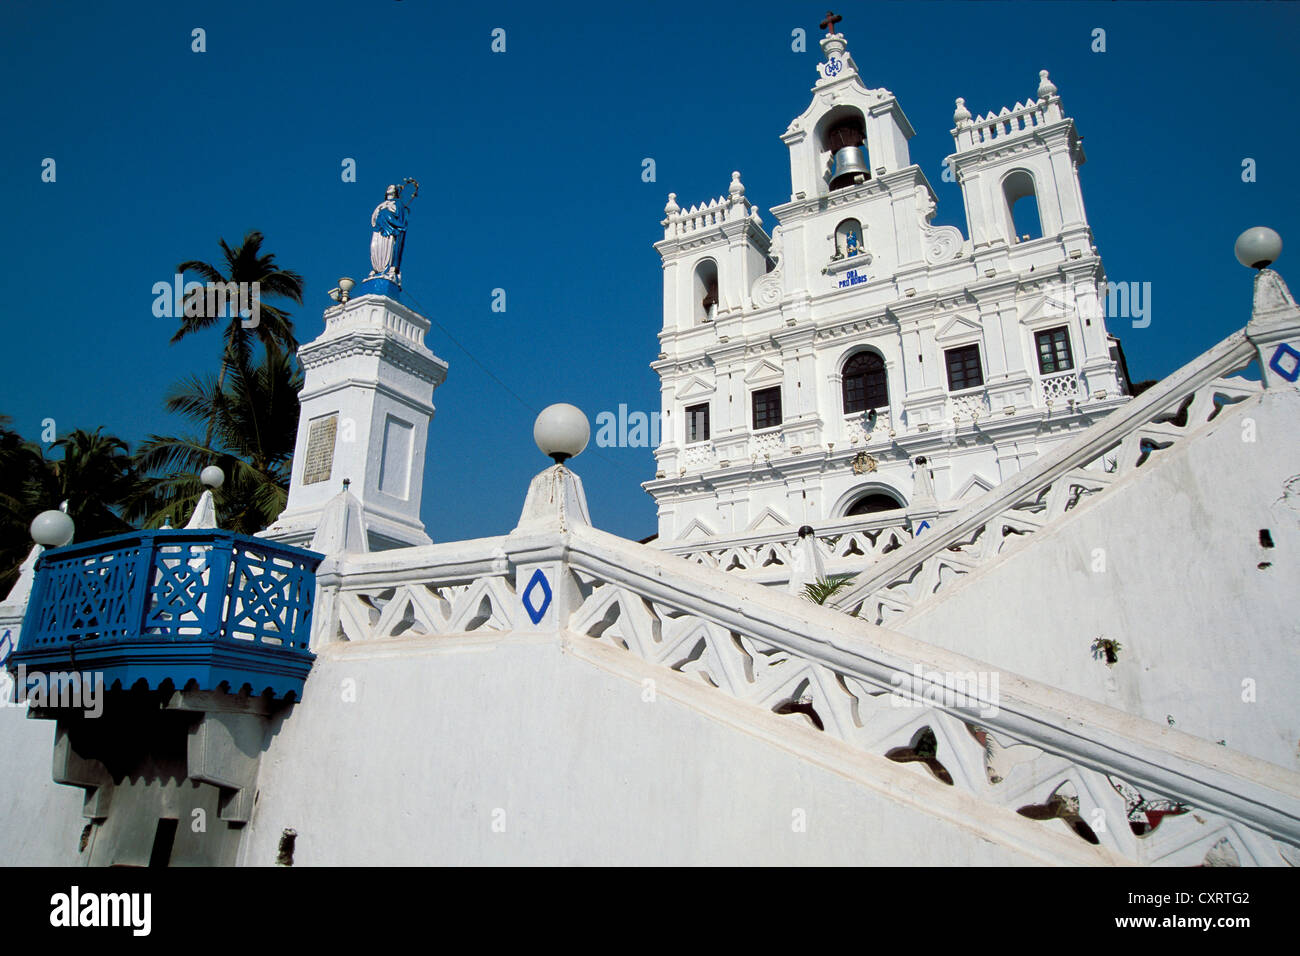 Panjim, whitewashed church, Our Lady of Immaculate Conception, Goa, South India, India, Asia - Stock Image